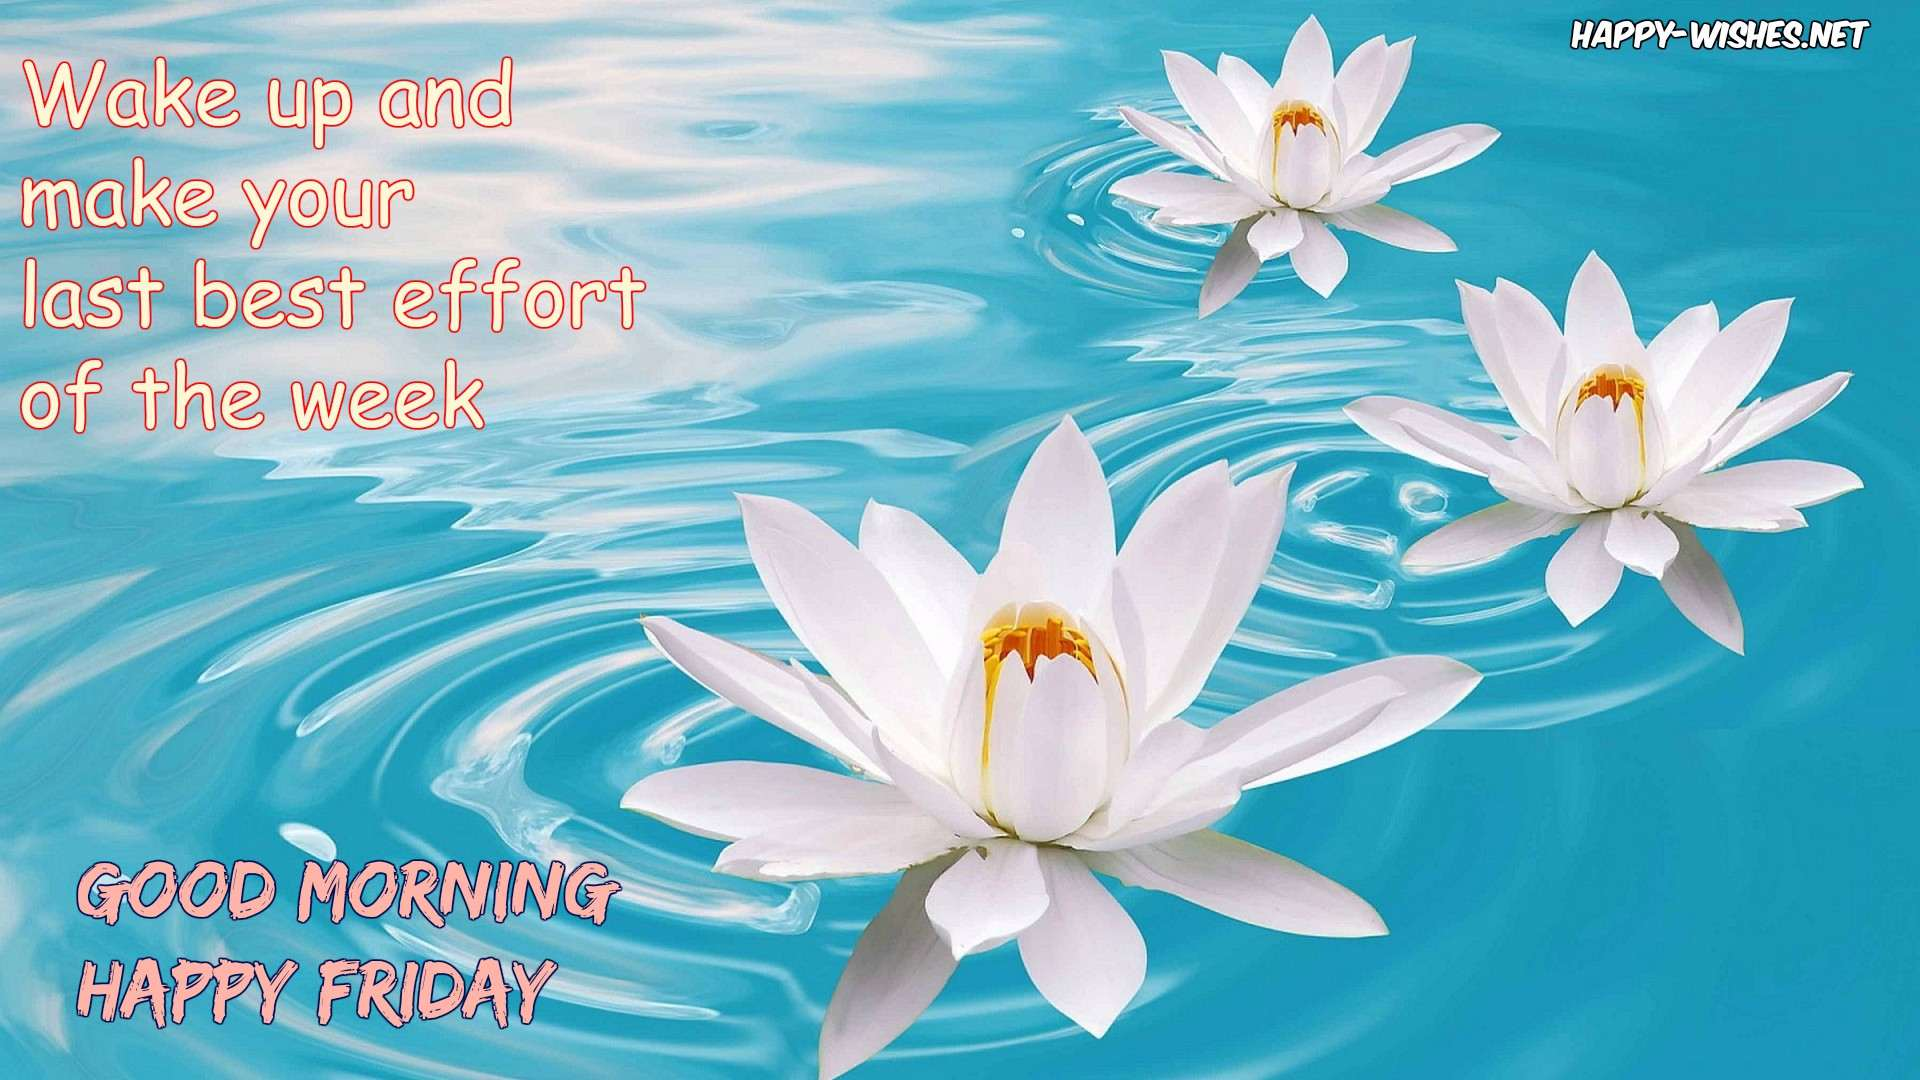 Good Morning wishes on Friday - Pictures